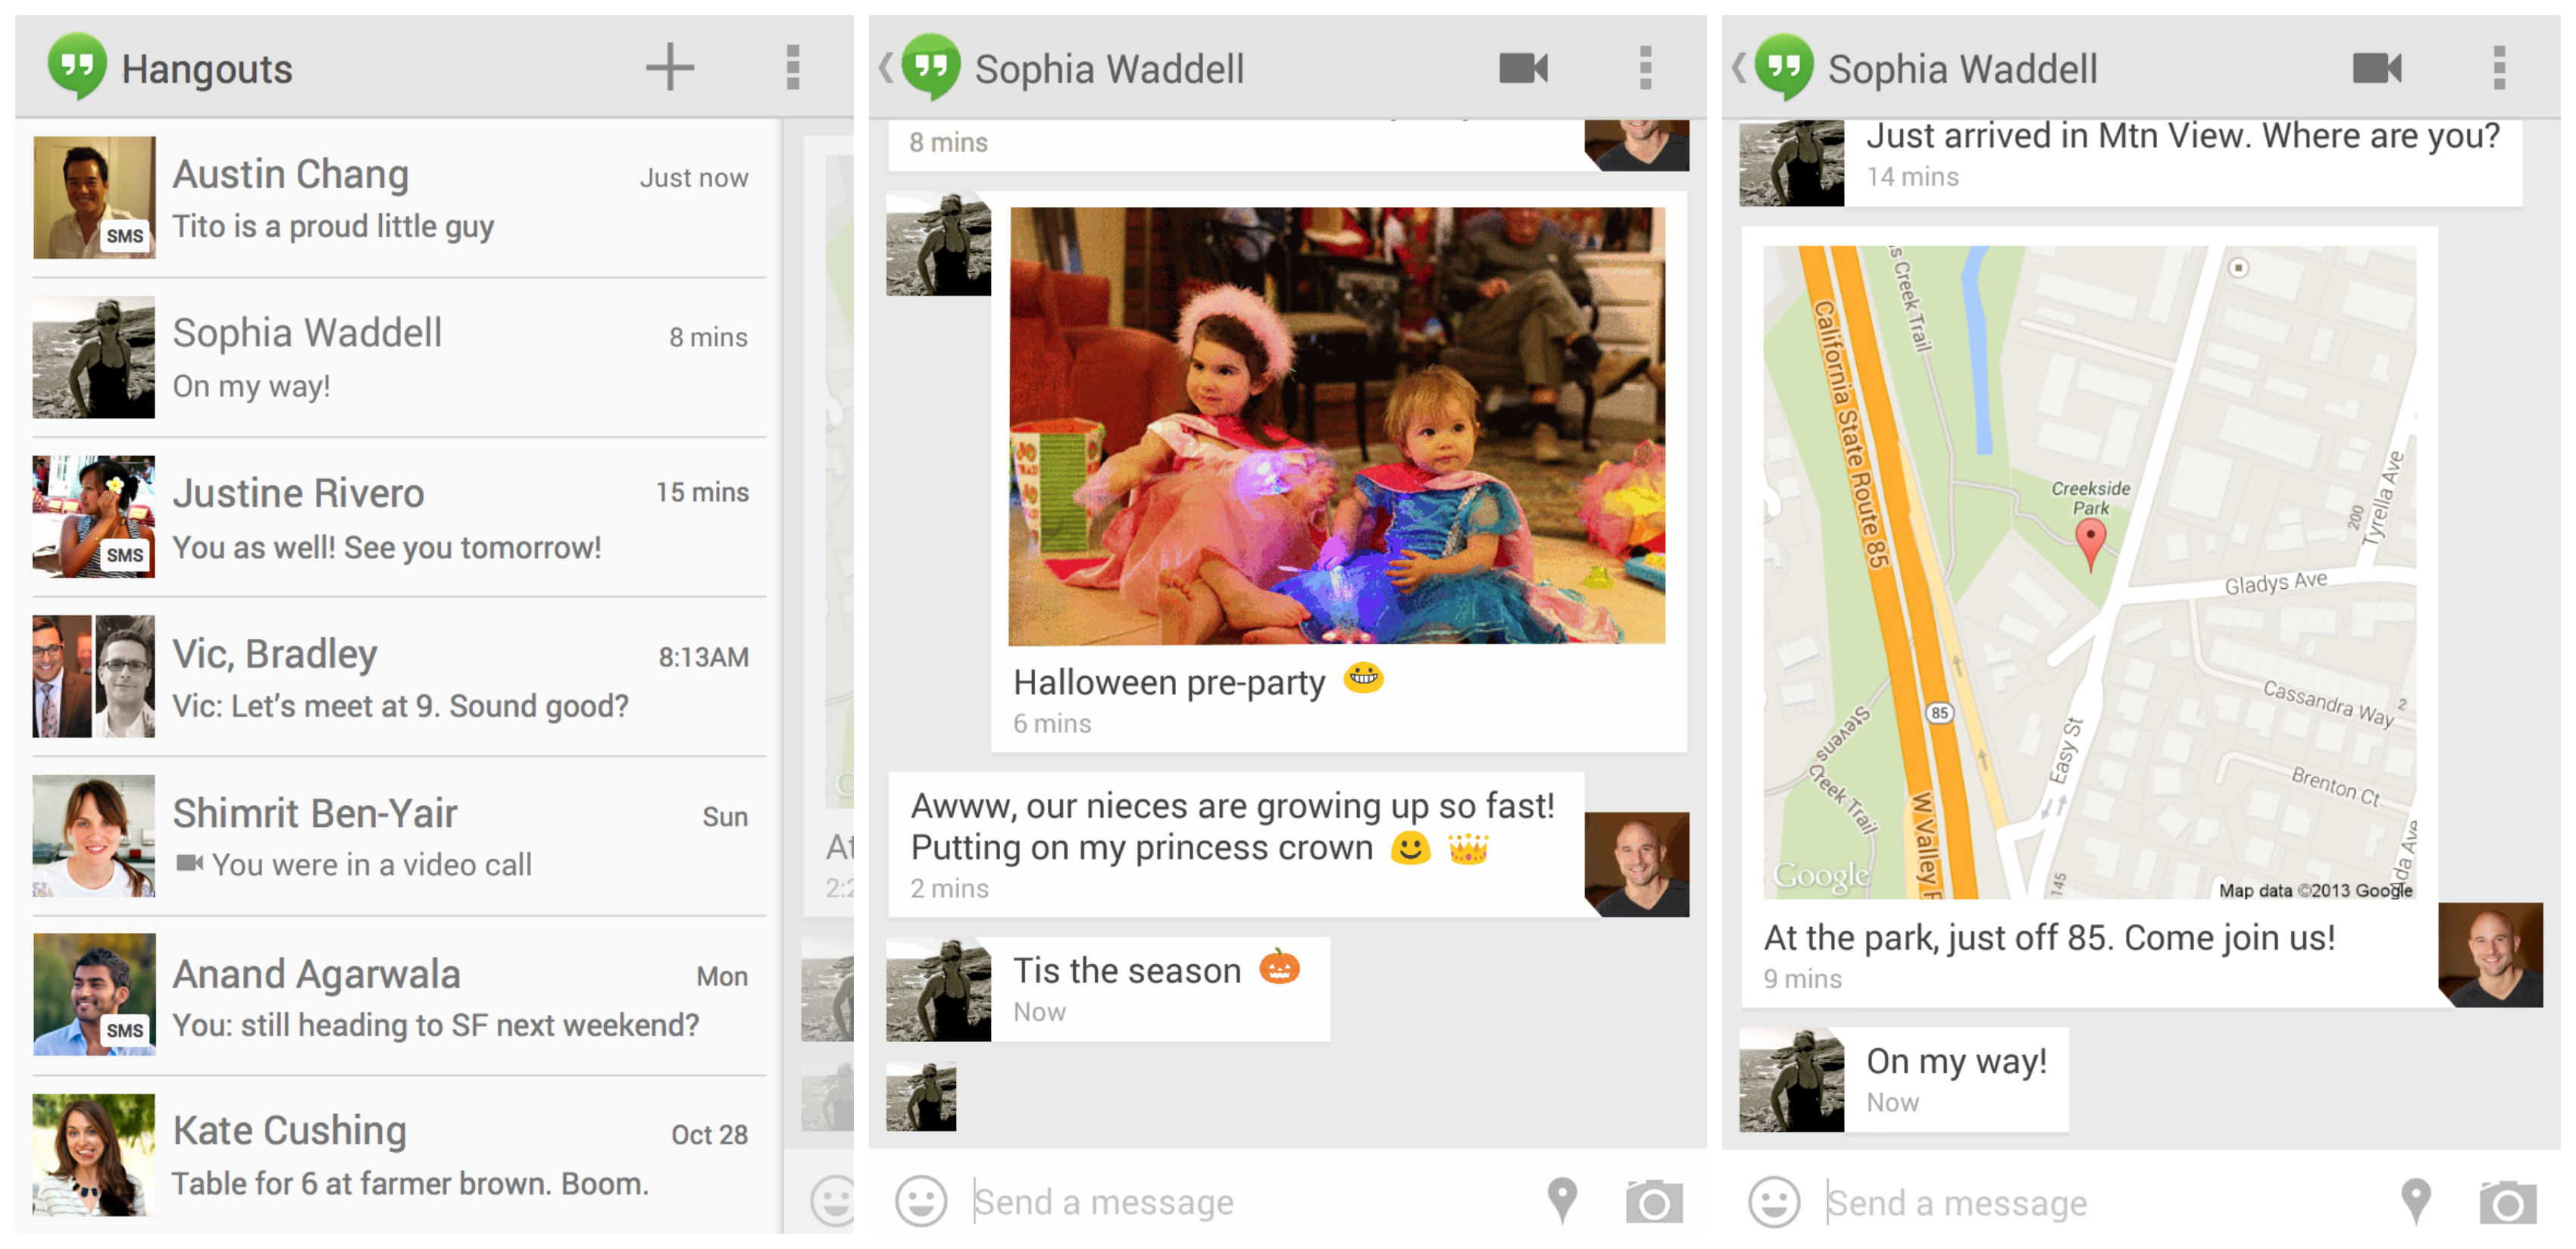 New Hangouts v2 will support SMS and MMS, but Google Voice